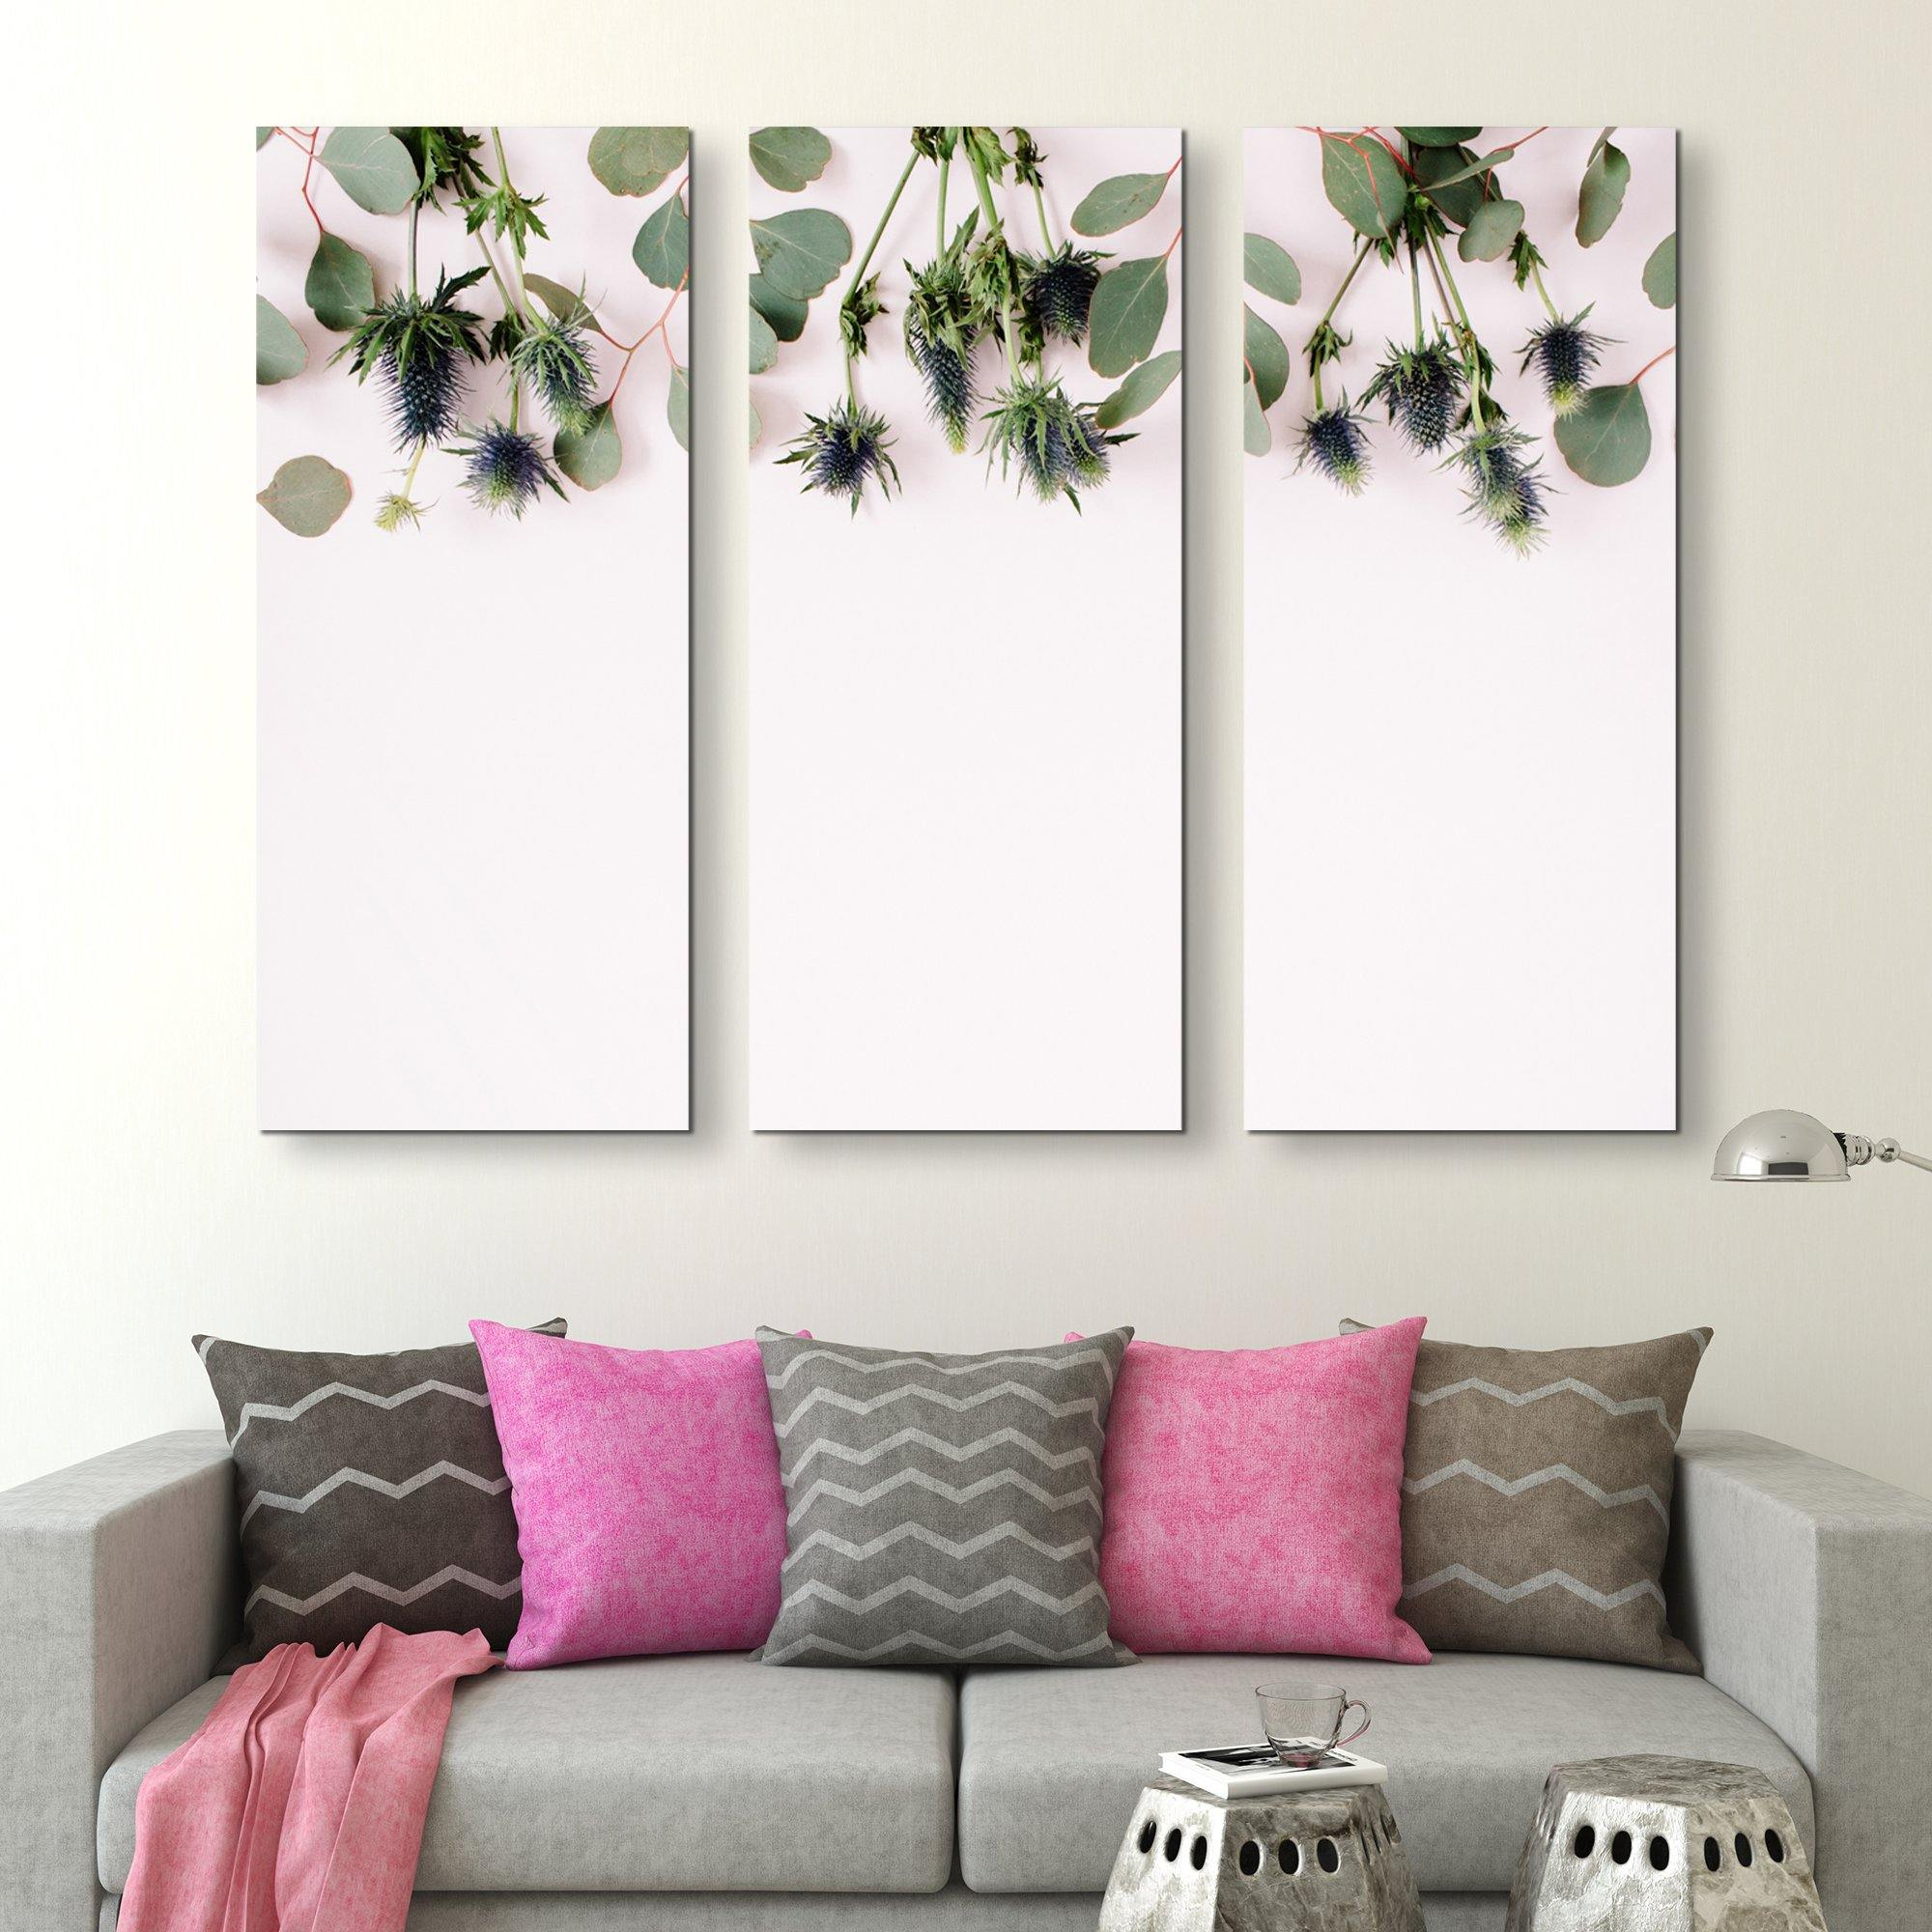 3 piece Eucalyptus Branches wall art